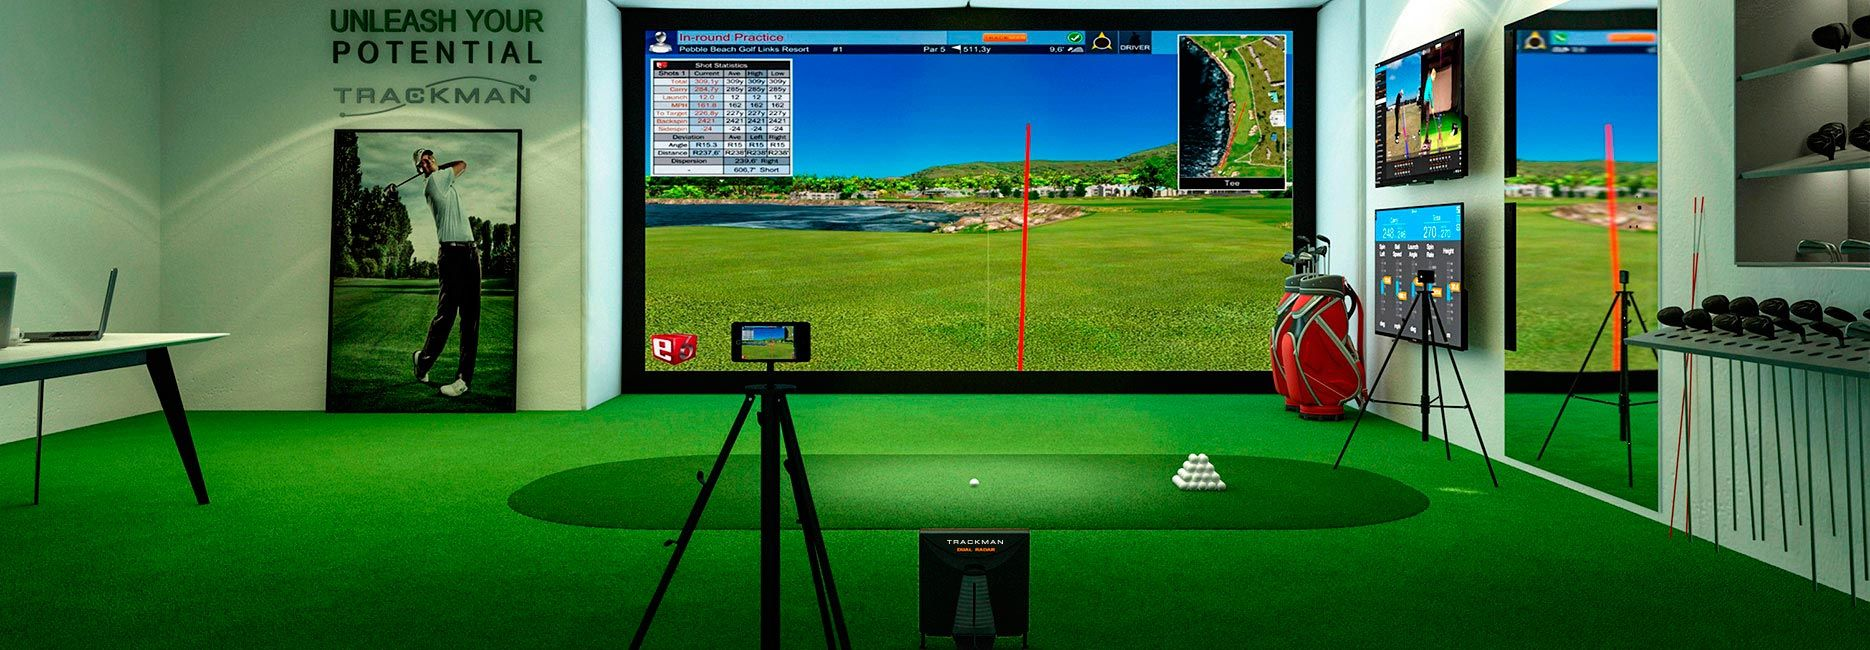 E6Golf software featured on Trackman simulator. https://trugolf ...